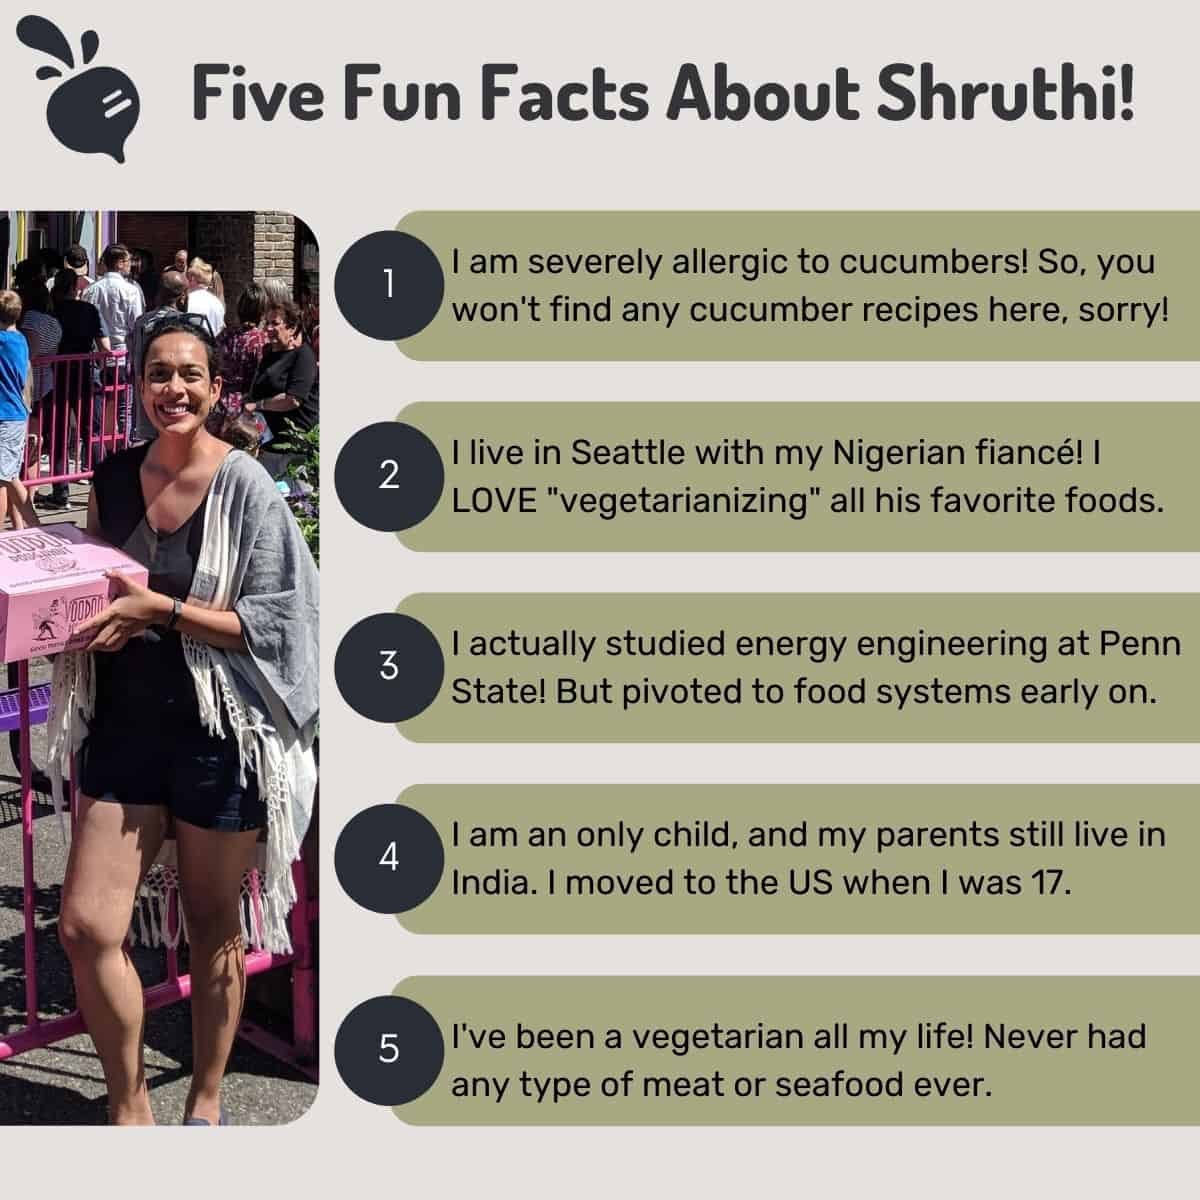 Five fun facts about Shruthi